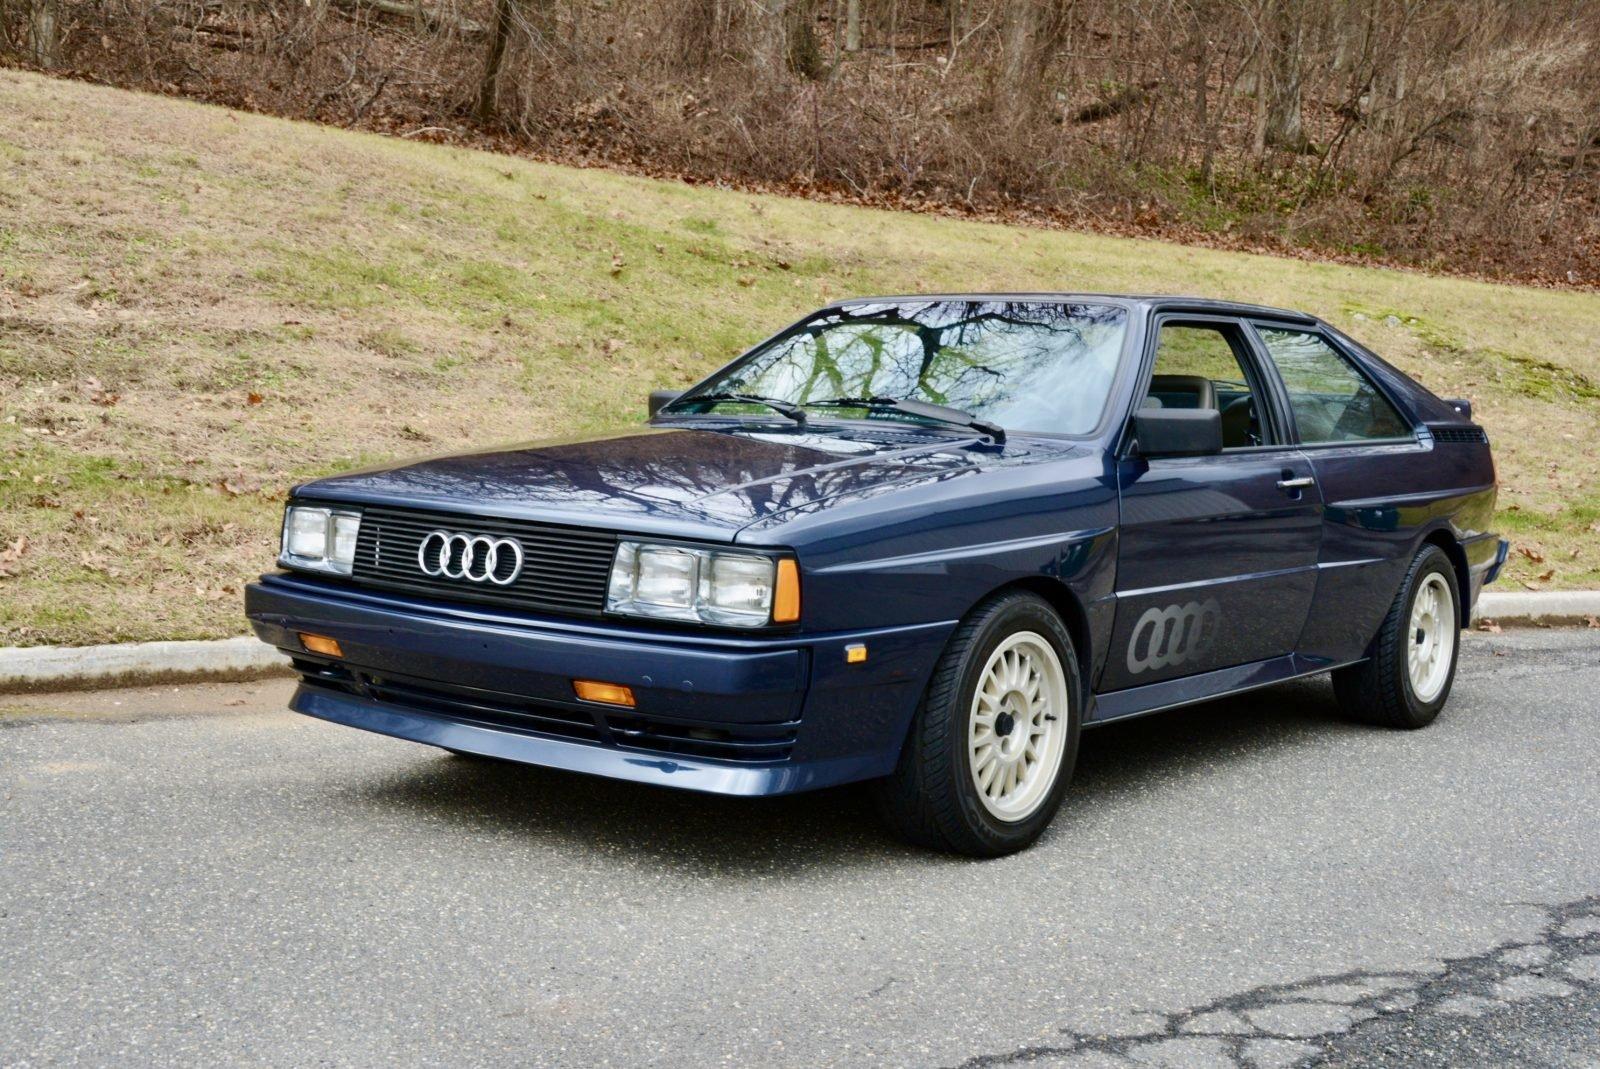 1985 Audi UR quattro Coupe Manual Rare 1 of 73 + Blue $55.9k For Sale (picture 2 of 6)